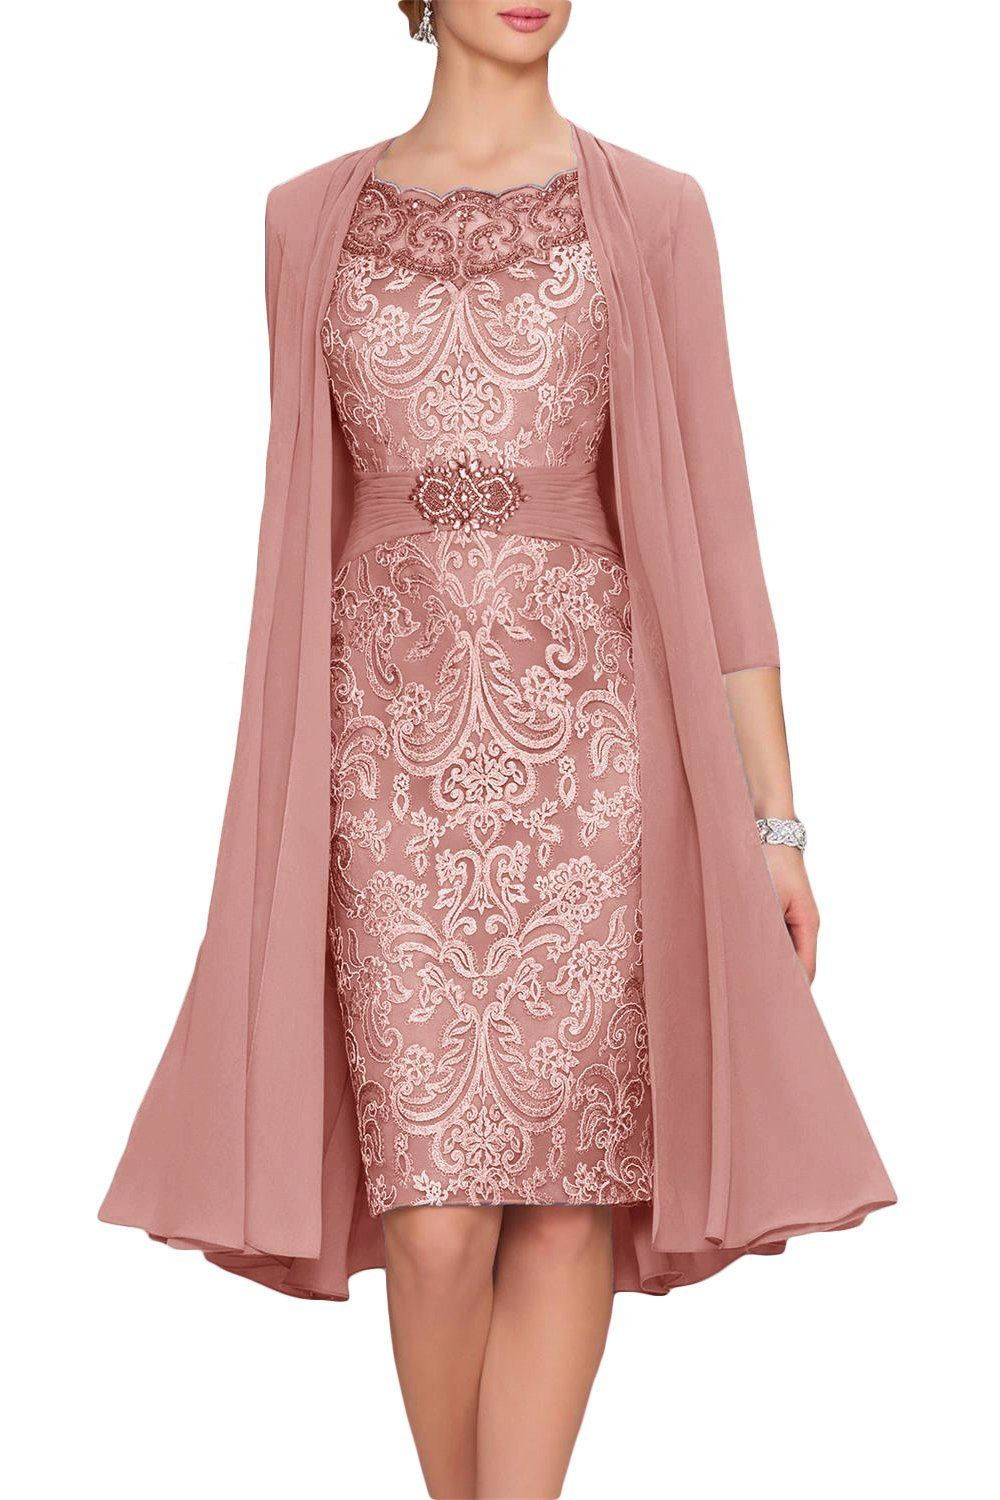 Cute Dusty Rose Chiffon Mother Of The Bride Dresses Tea Length Two Pieces With Jacket Velvet Wedding Dress Tea Length Dresses White Long Dress Formal